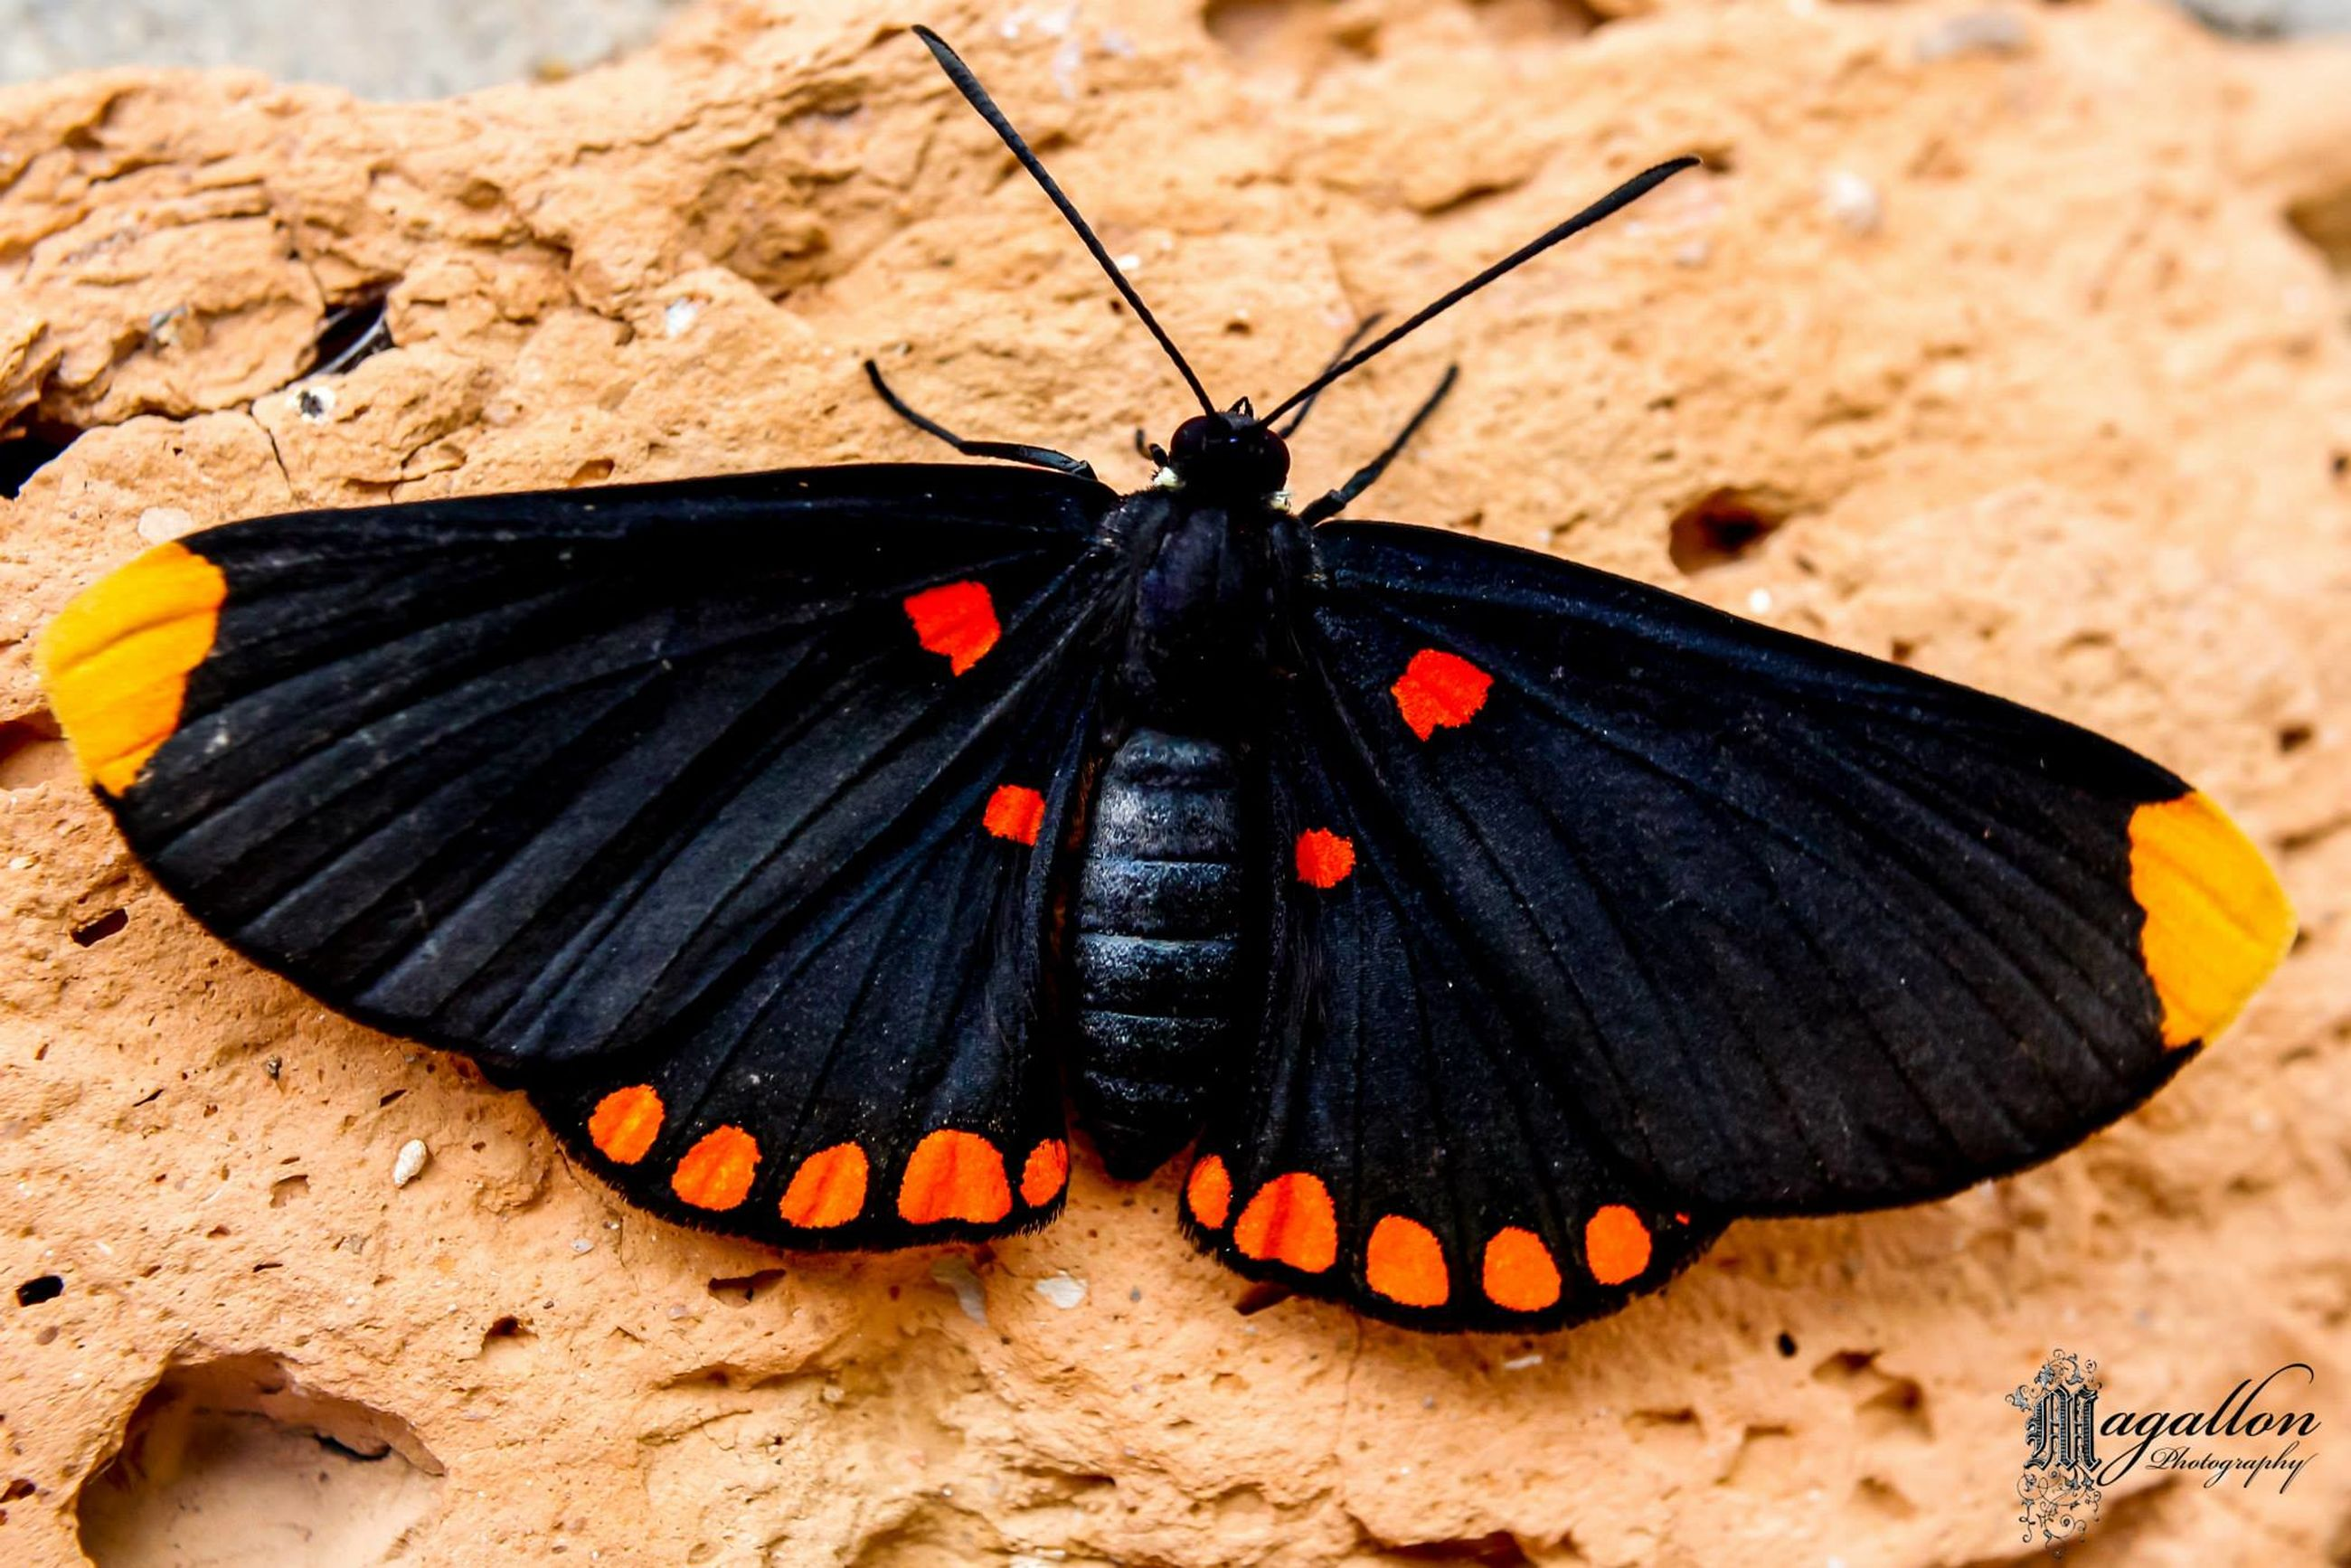 insect, animal themes, animals in the wild, one animal, butterfly - insect, wildlife, butterfly, animal wing, close-up, animal markings, natural pattern, animal antenna, nature, focus on foreground, beauty in nature, outdoors, orange color, day, no people, high angle view